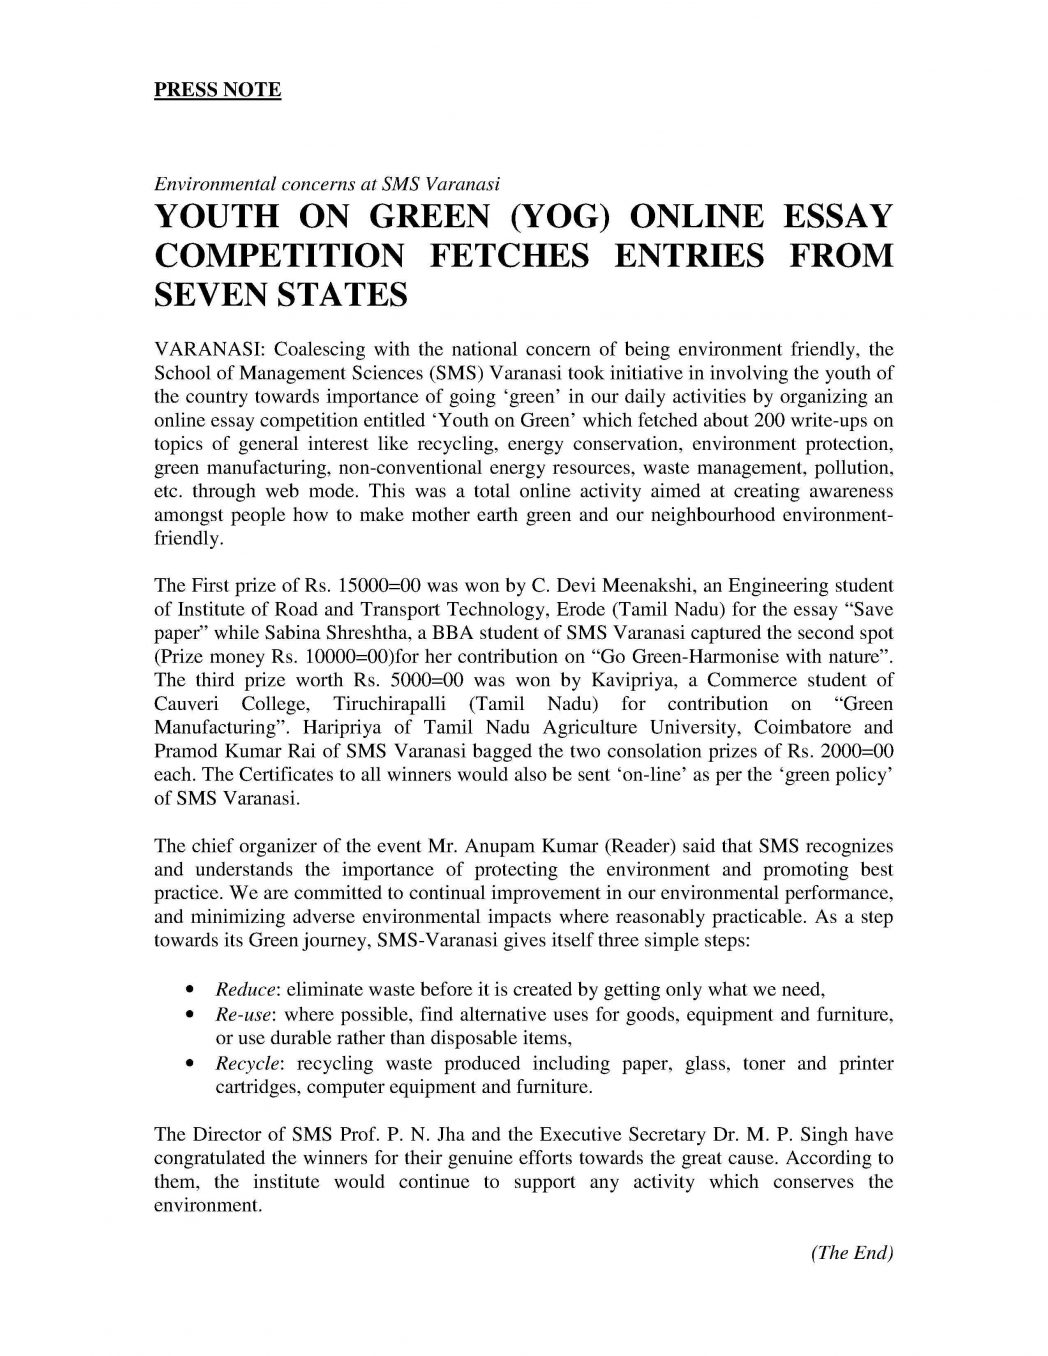 020 Best Essays For College Essay On Good Habits How Tot Application Online Yog Press Re About Yourself Examples Your Background Failure Prompt Off Hook 1048x1356 Example Amazing To Start An Argumentative A Book With Definition Life Full